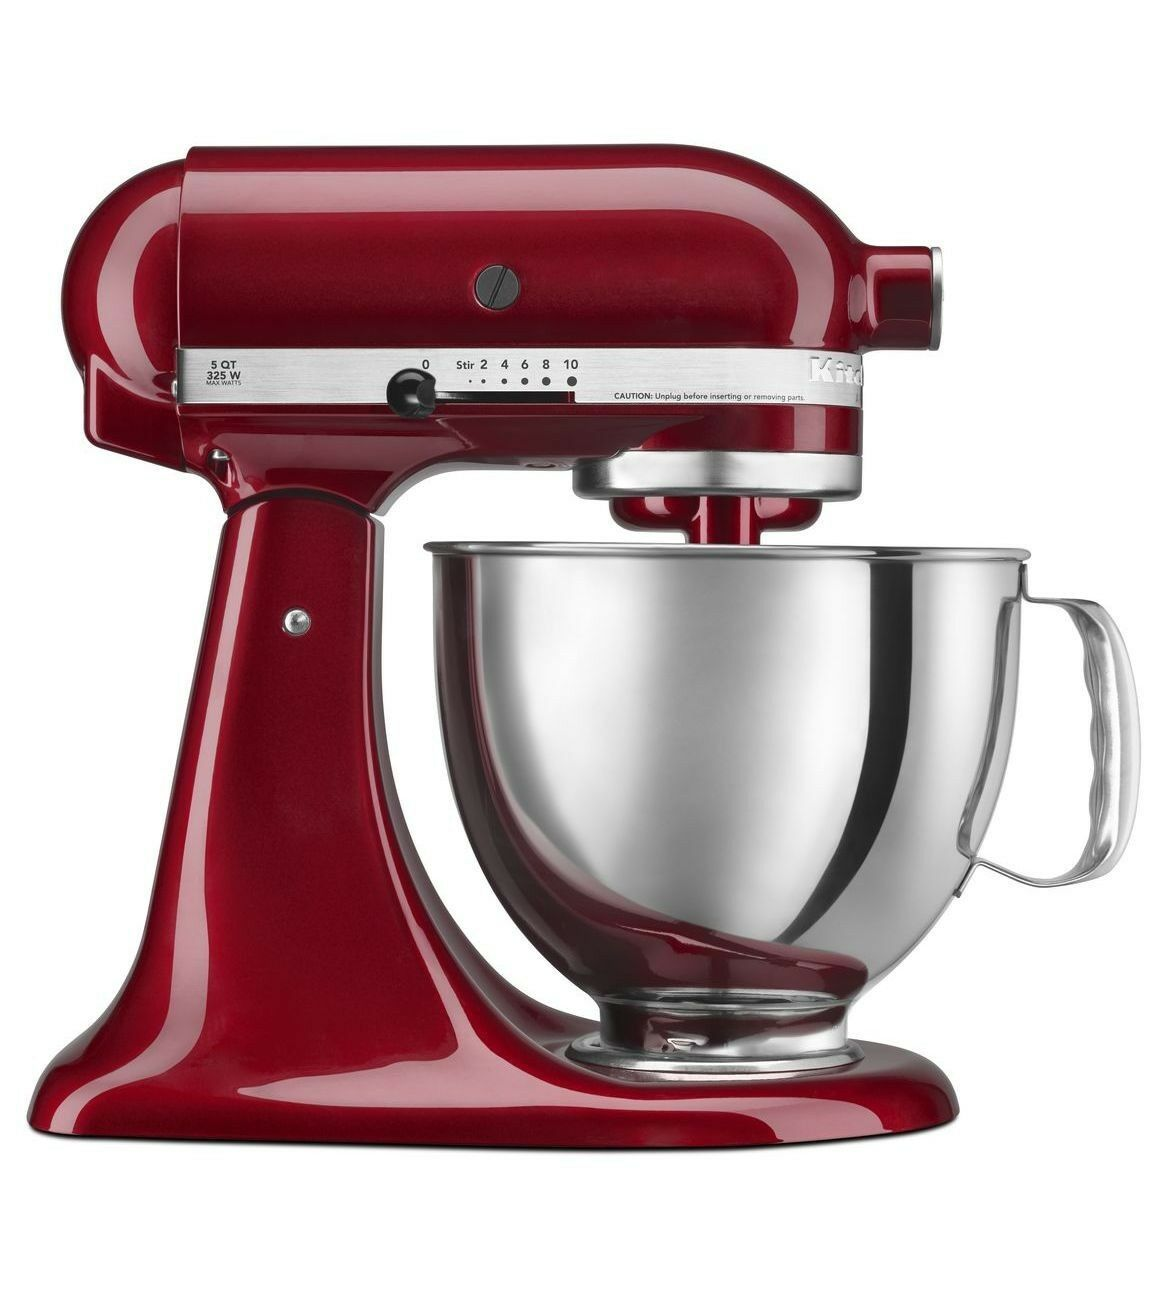 Best prices on Kitchenaid artisan mixer sale in Mixers. Check out Bizrate for great deals on popular brands like Hamilton Beach, KitchenAid and Whirlpool. .